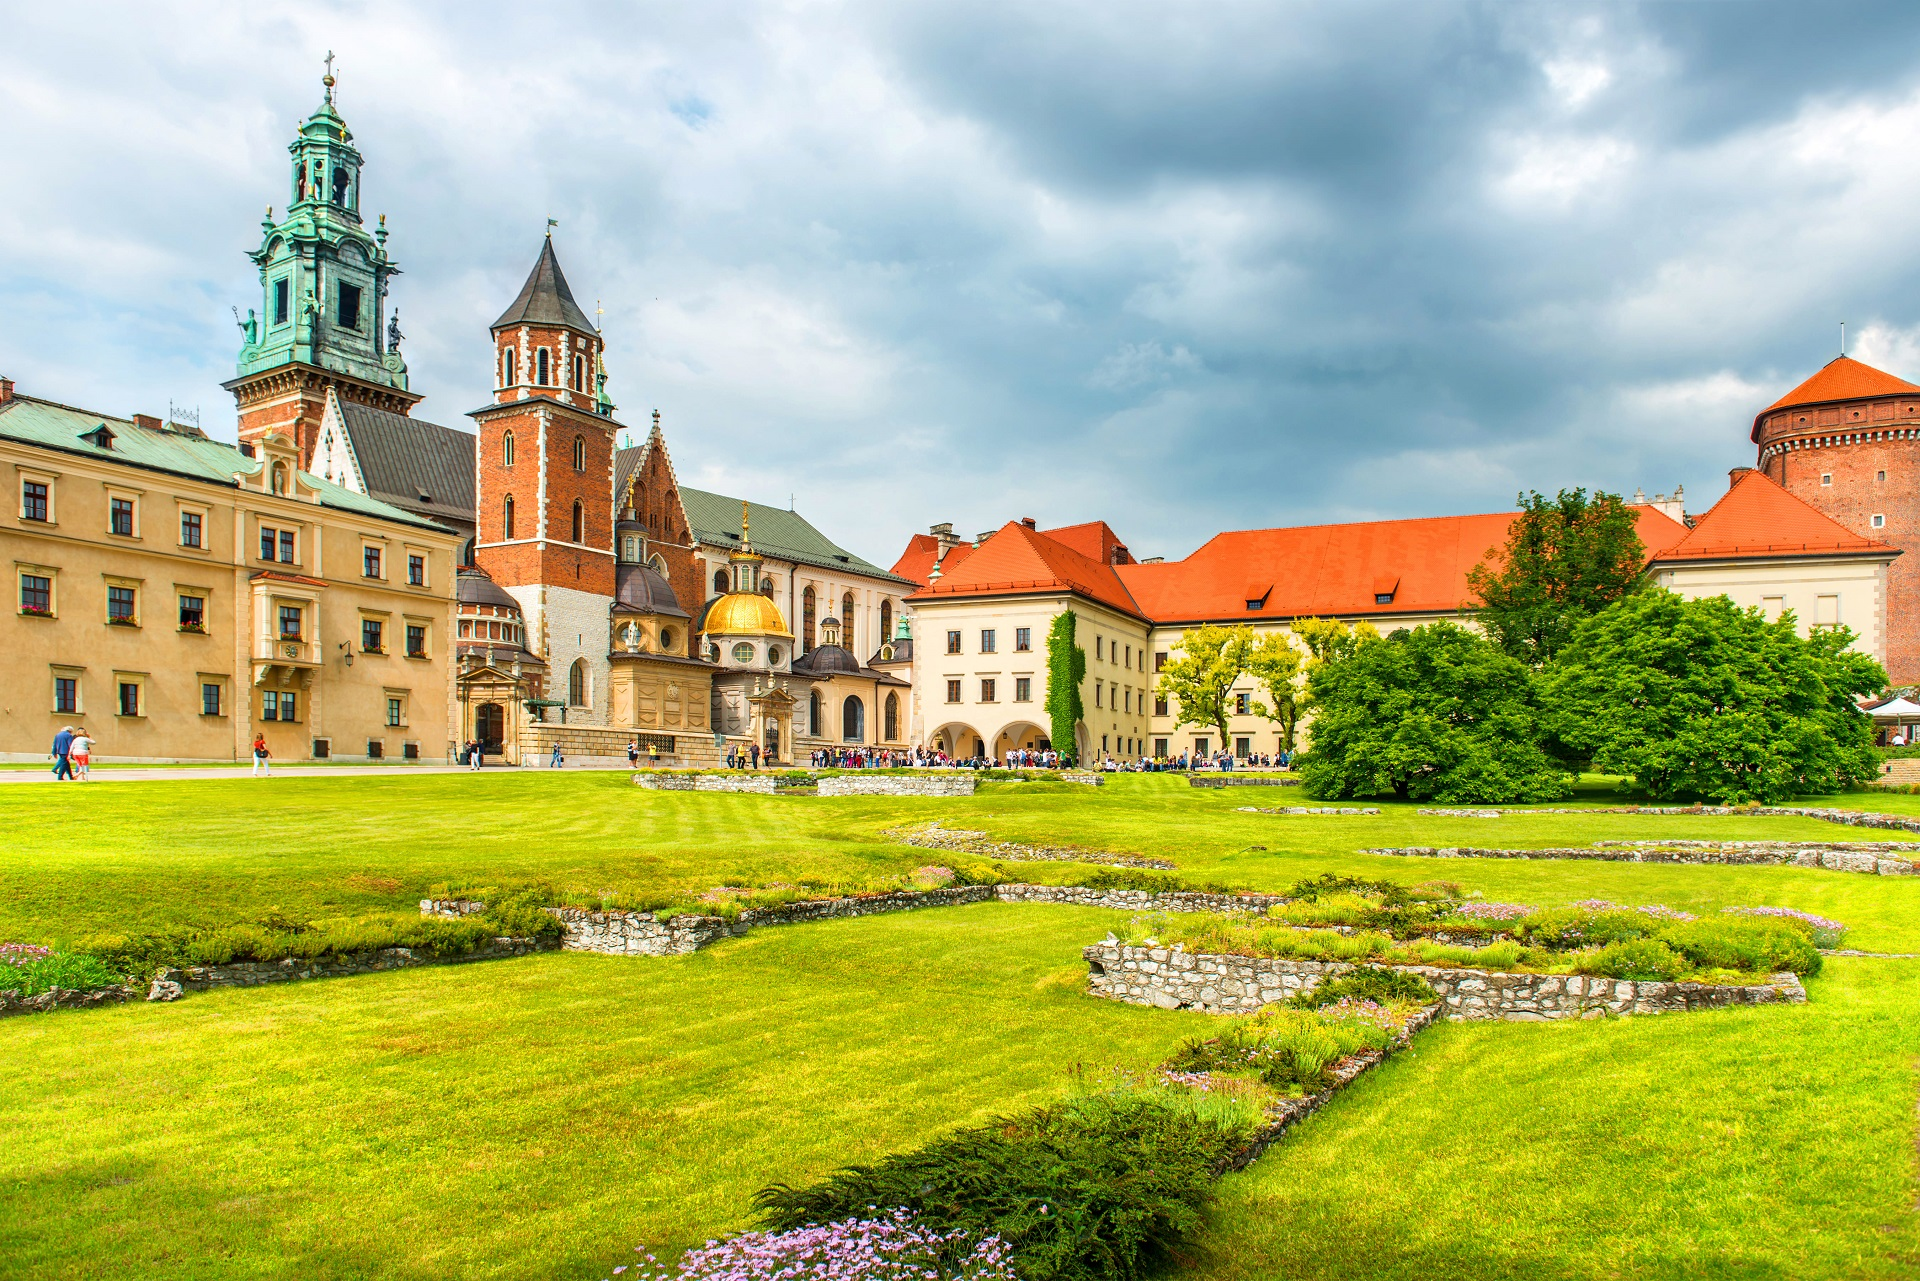 wawel-cathedral-krakow-poland-green-lawn-against-castle